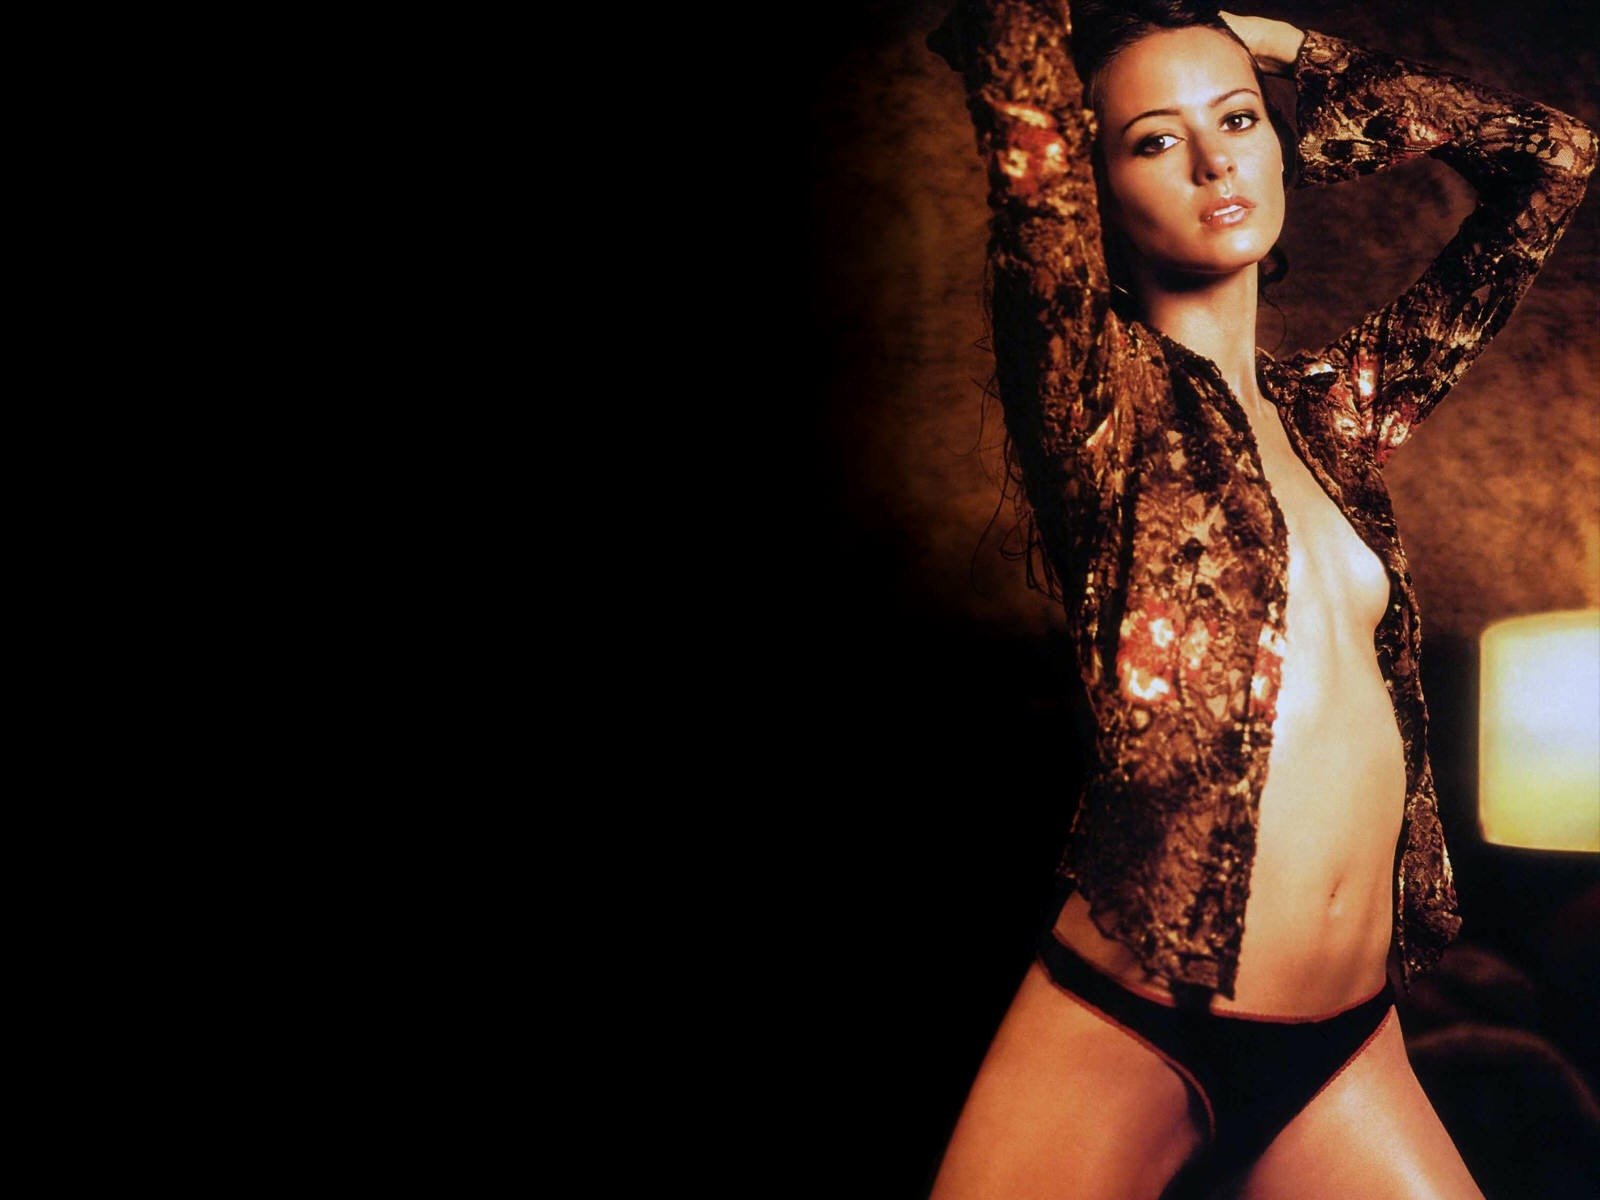 Wallpaper di Amy Acker - 12